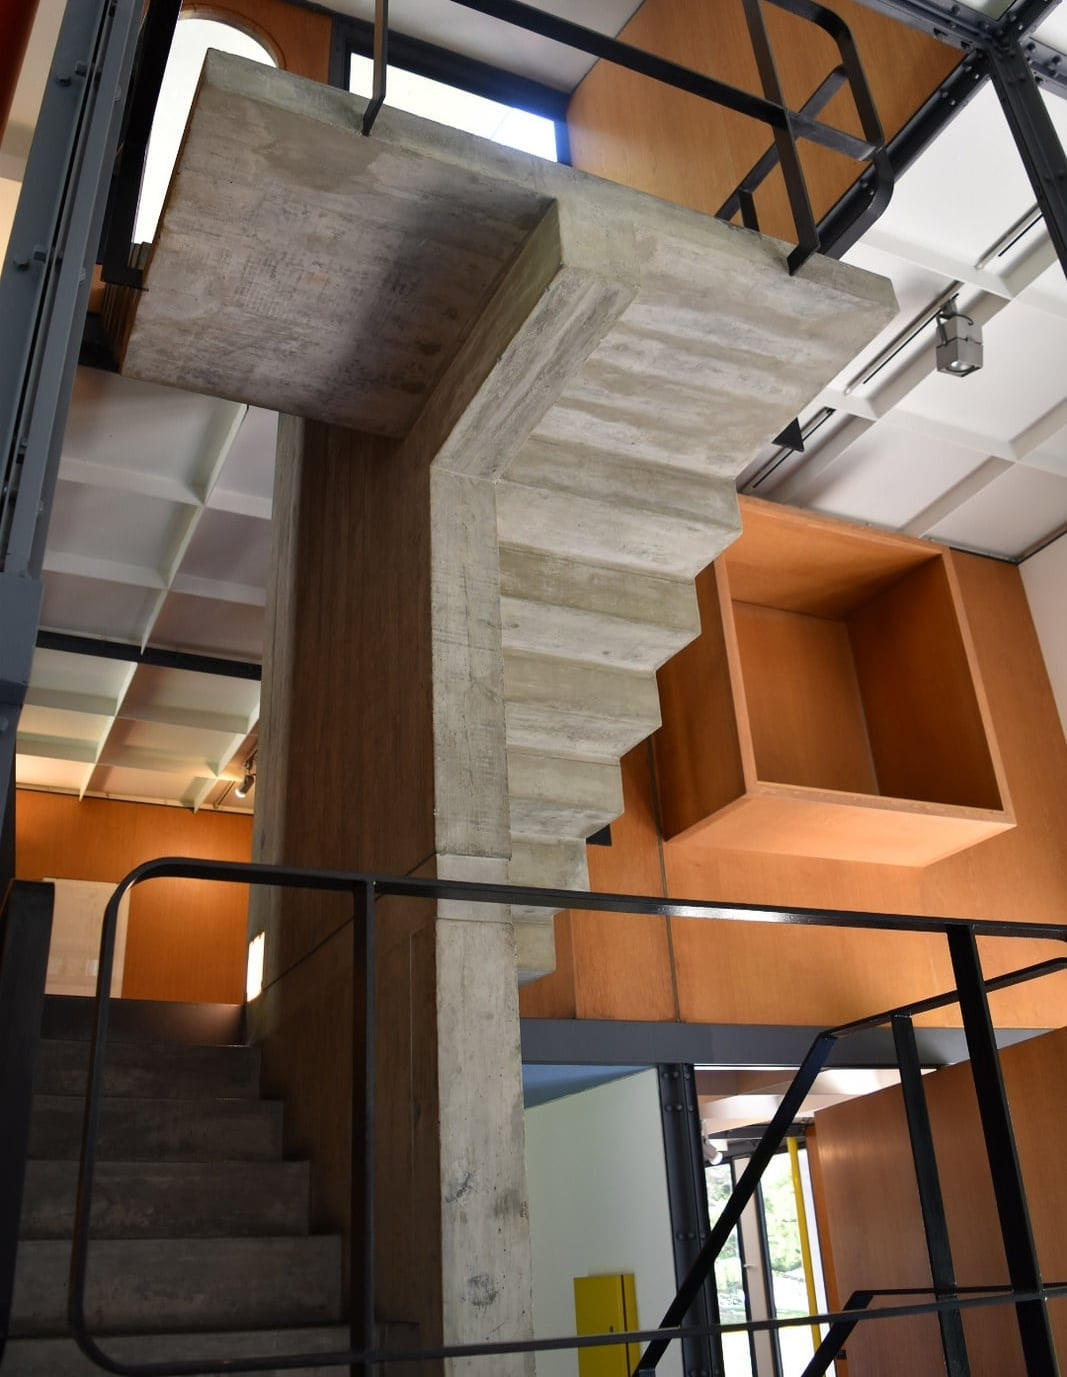 Interior view of the last structure designed by the famous Swiss architect Charles-Edouard Jeanneret-Gris, better known as Le Corbusier. Photo: Bernardo Fiol